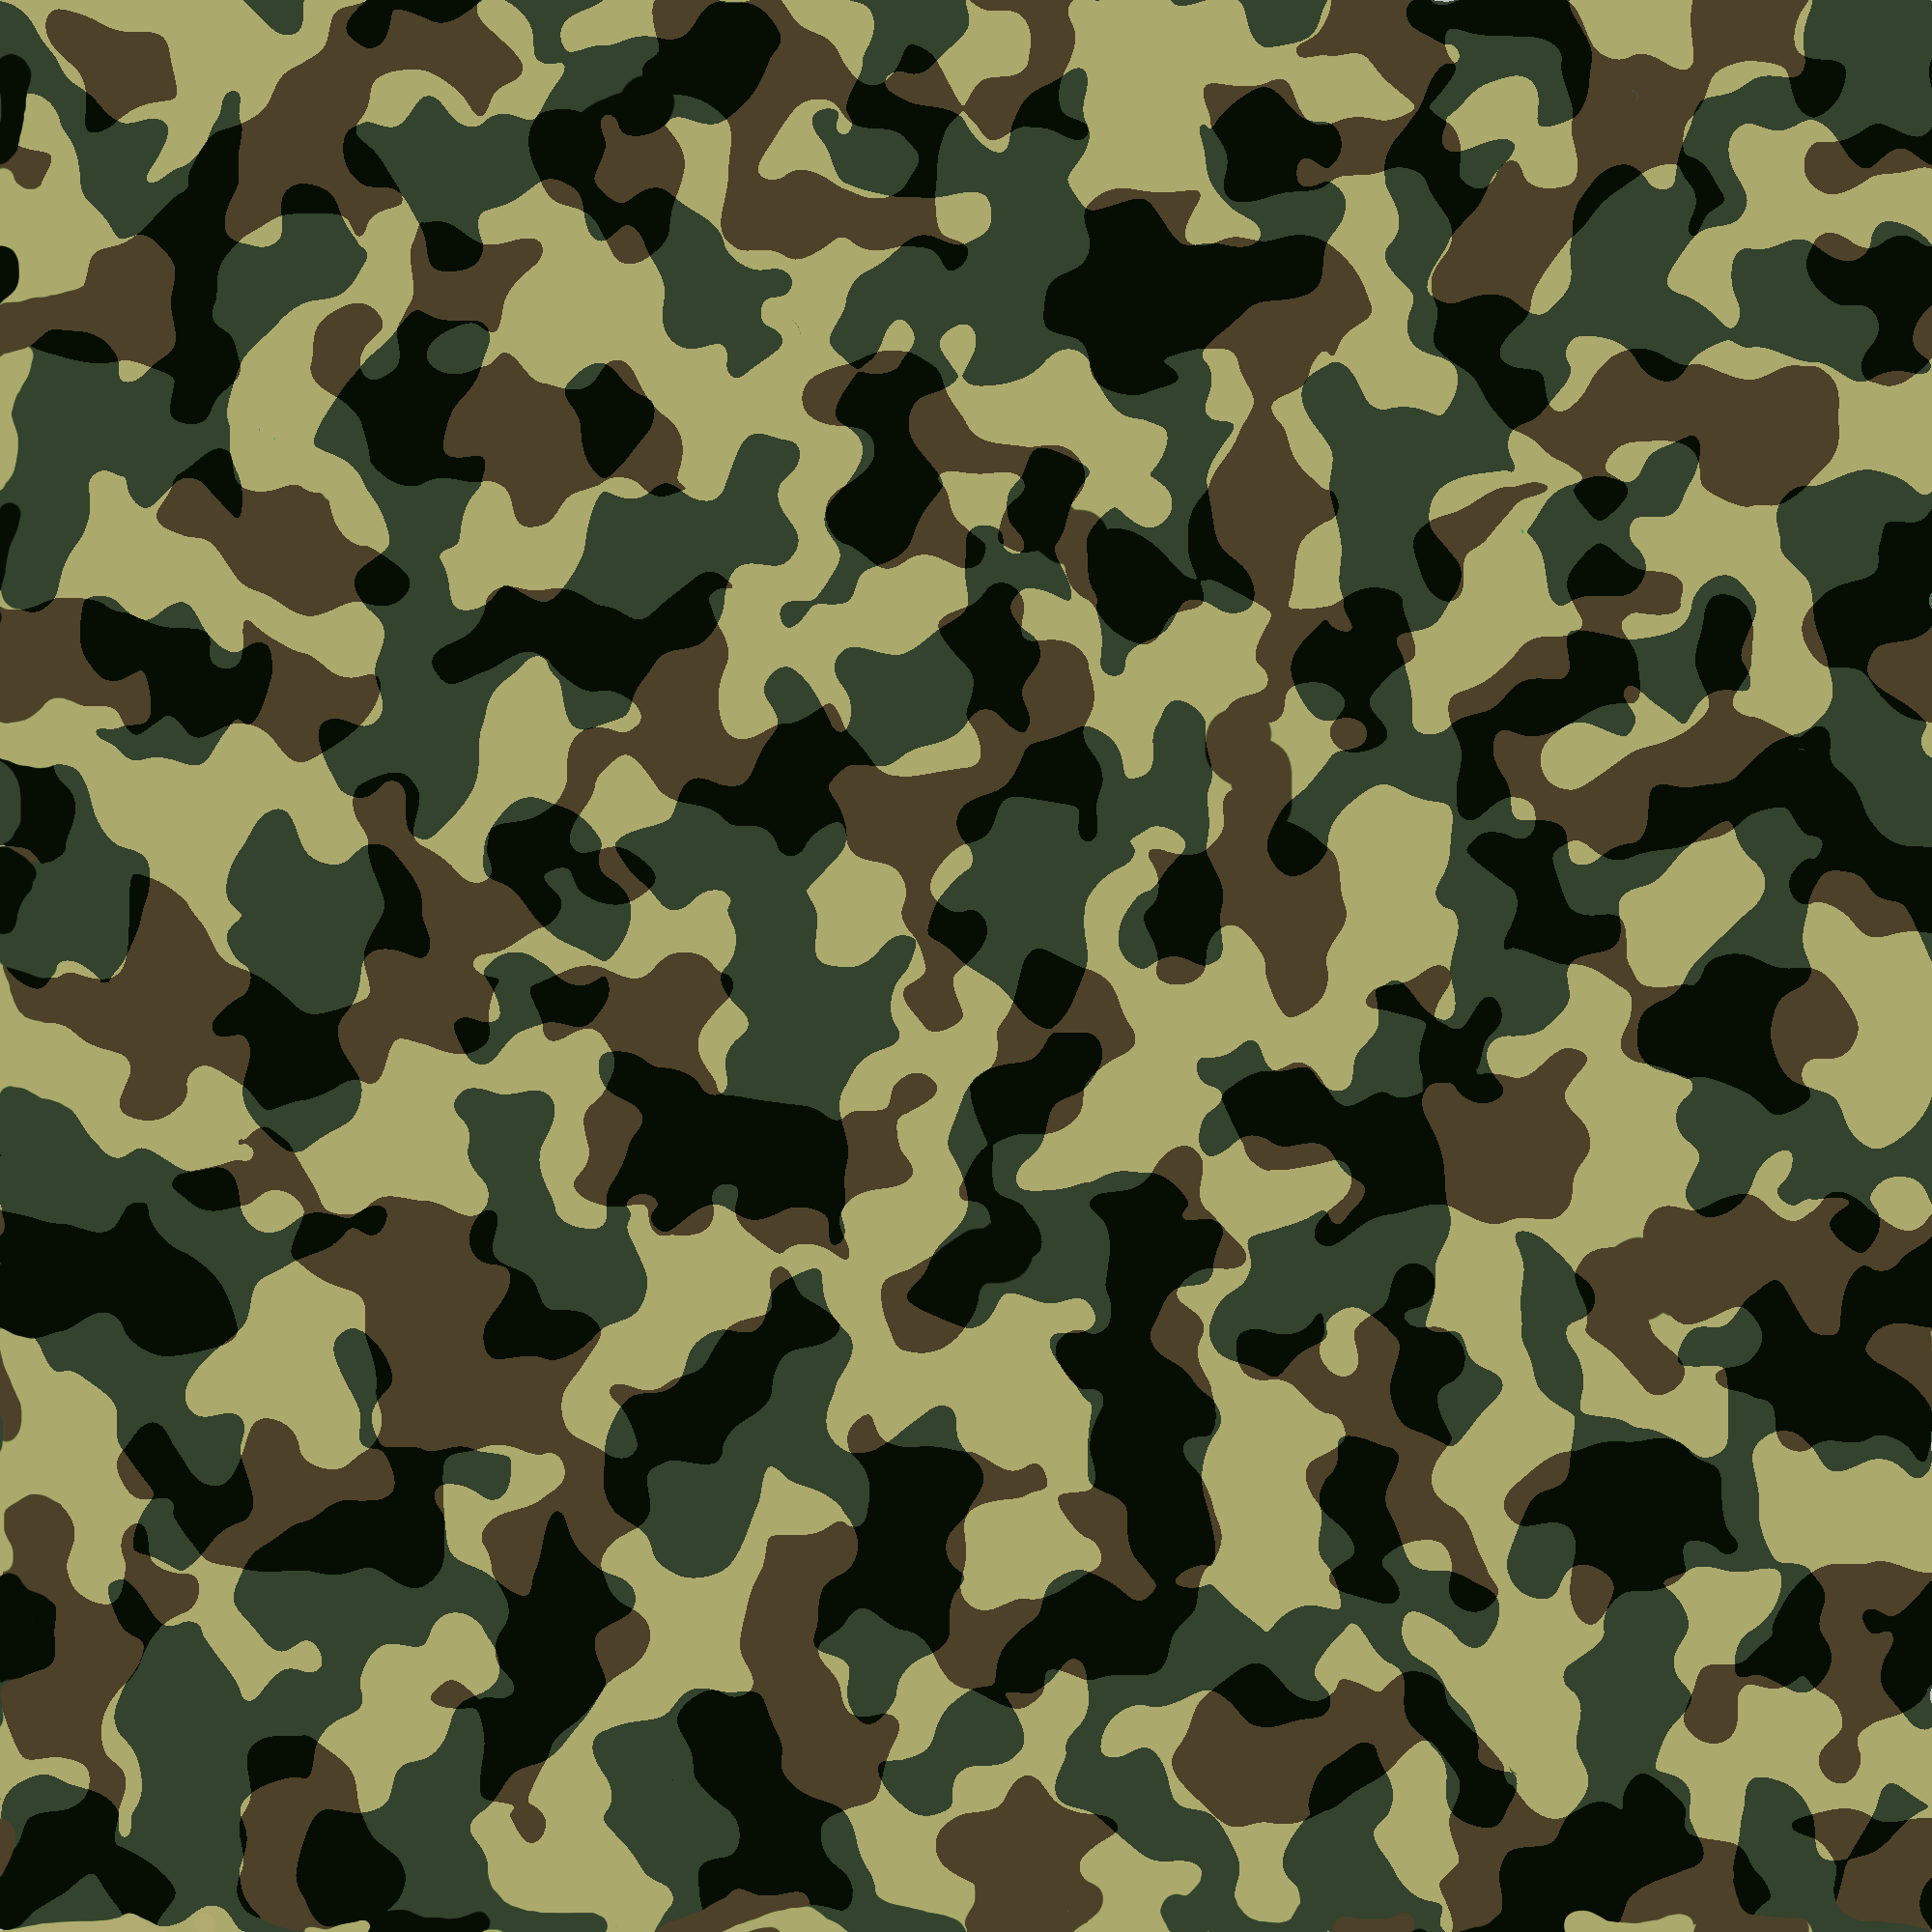 Playing picture of army camouflage closeup